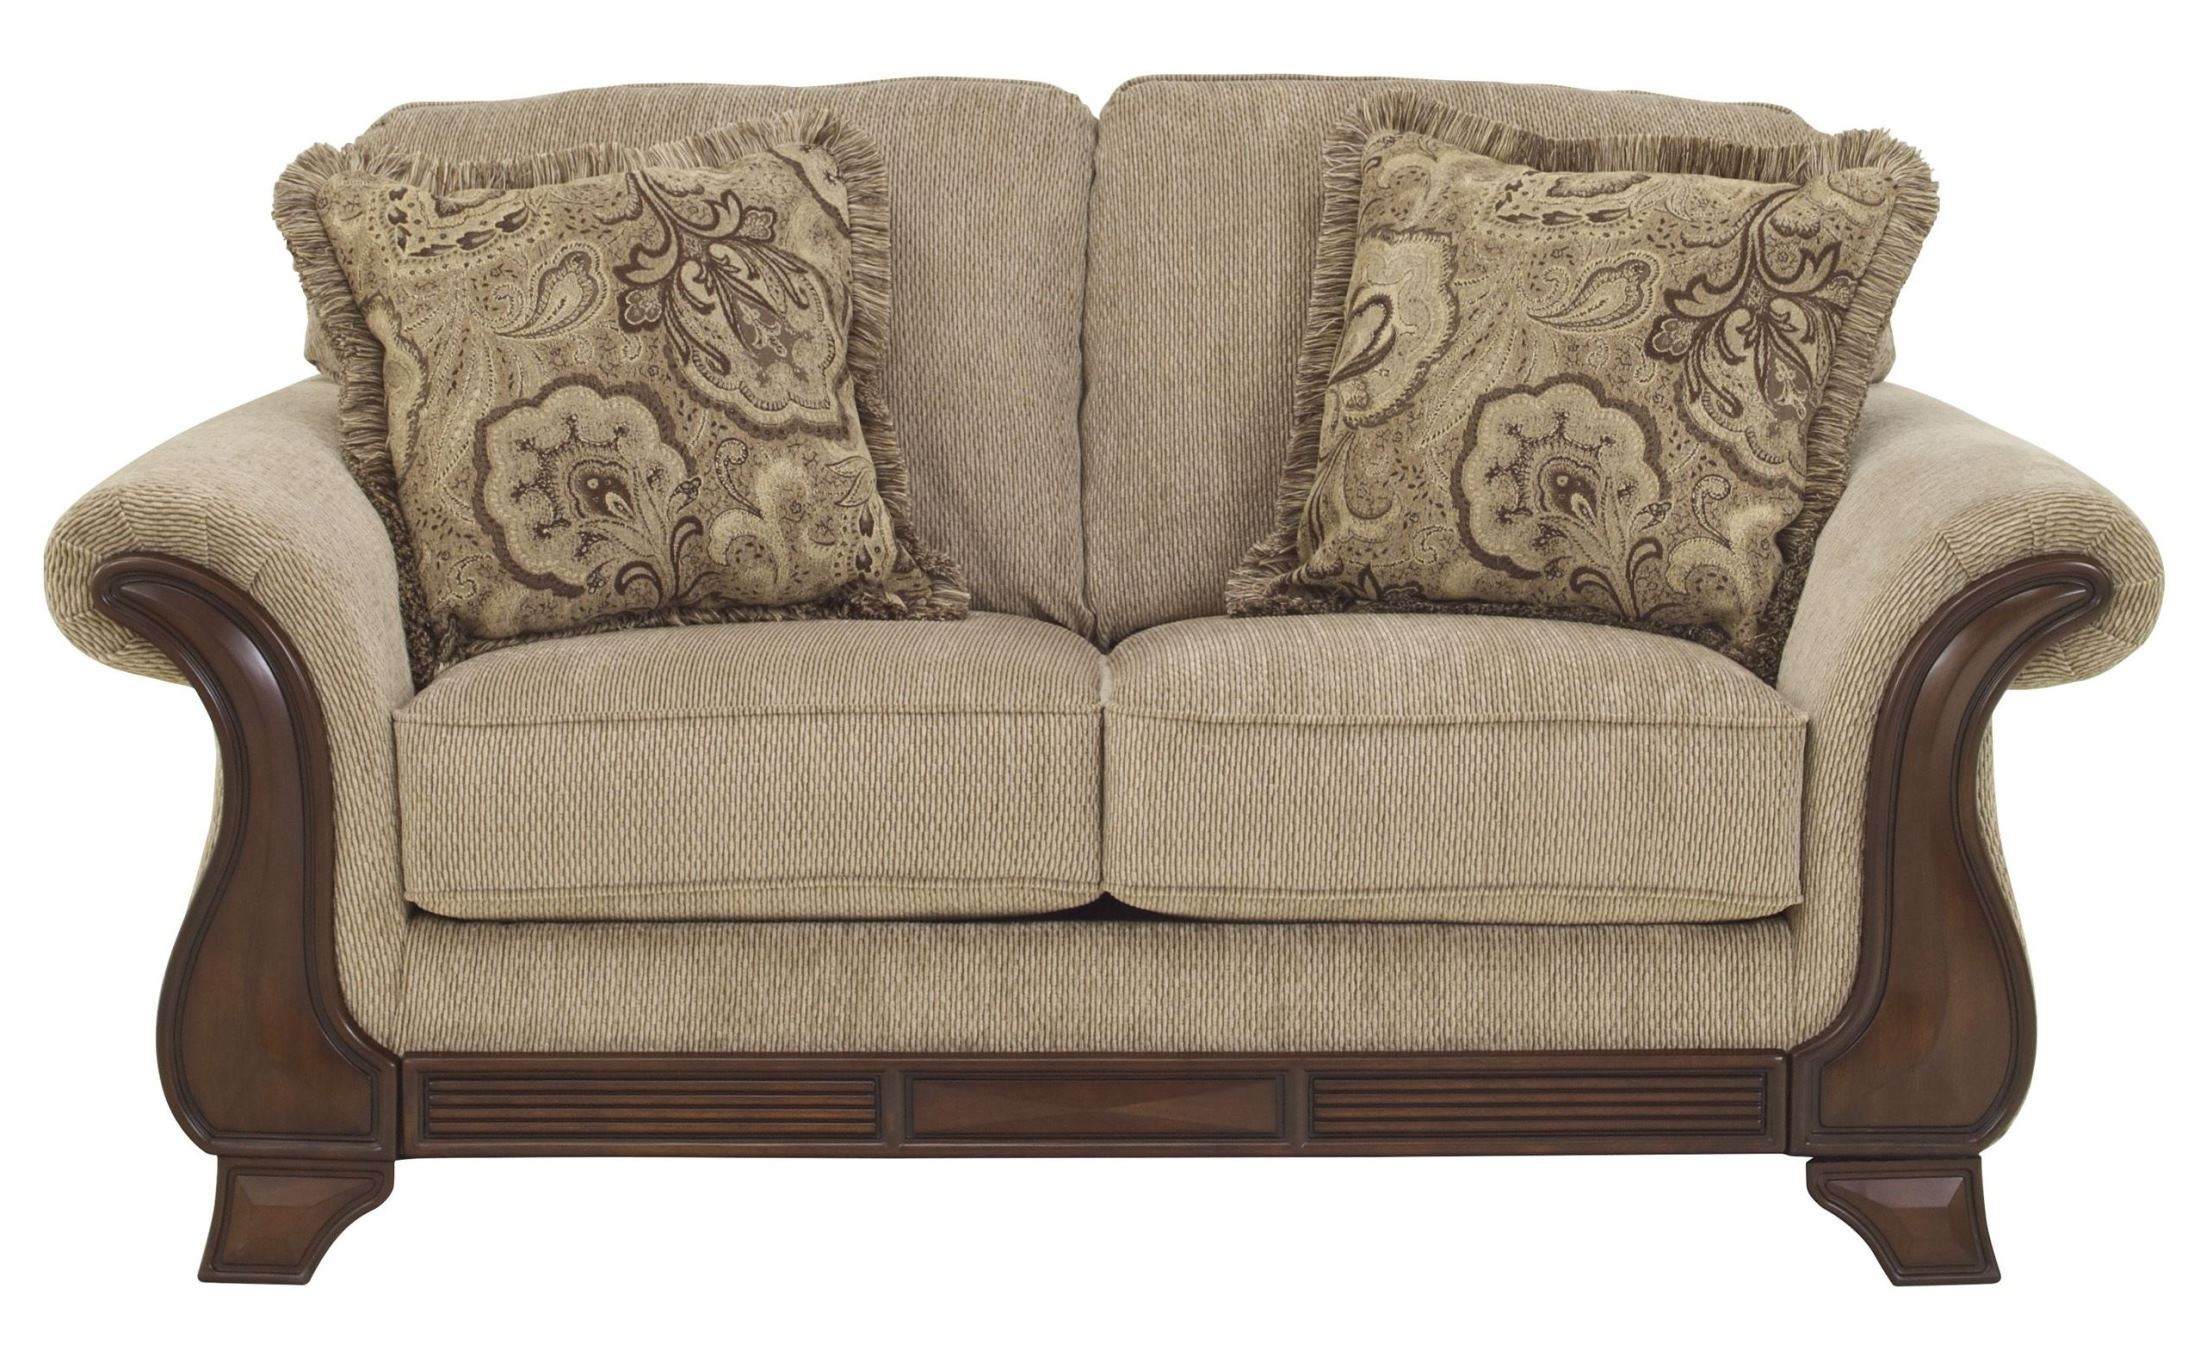 Lanett Living Room Set From Ashley 4490038 Coleman